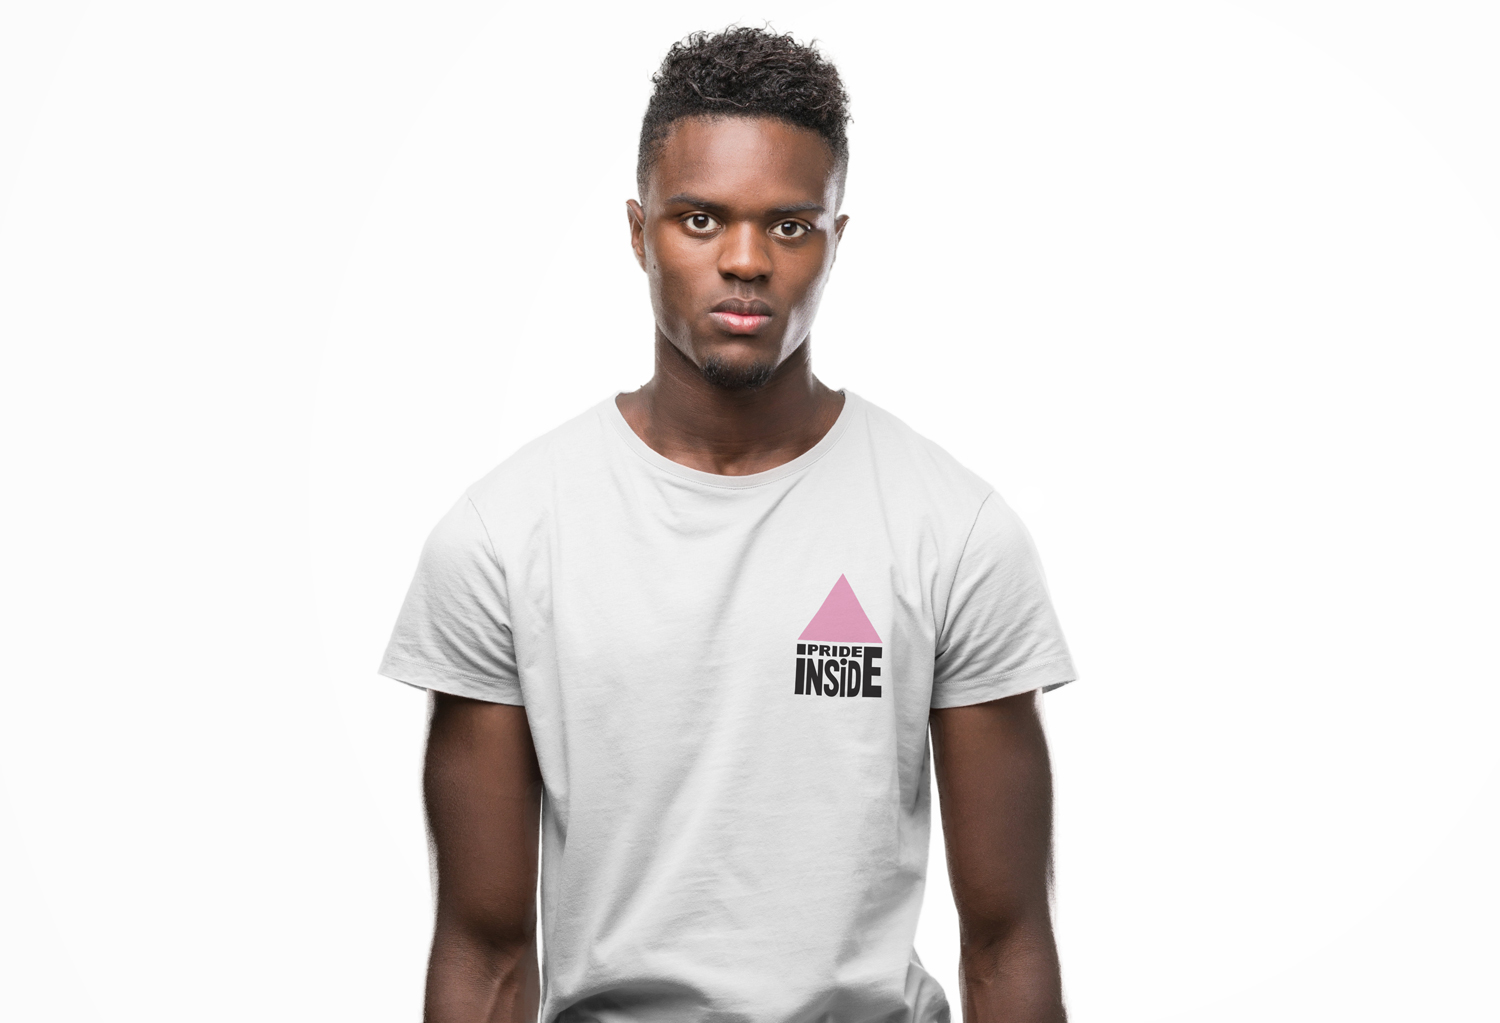 Pride Inside t-shirt from our Pride Shop / Heyboy.com